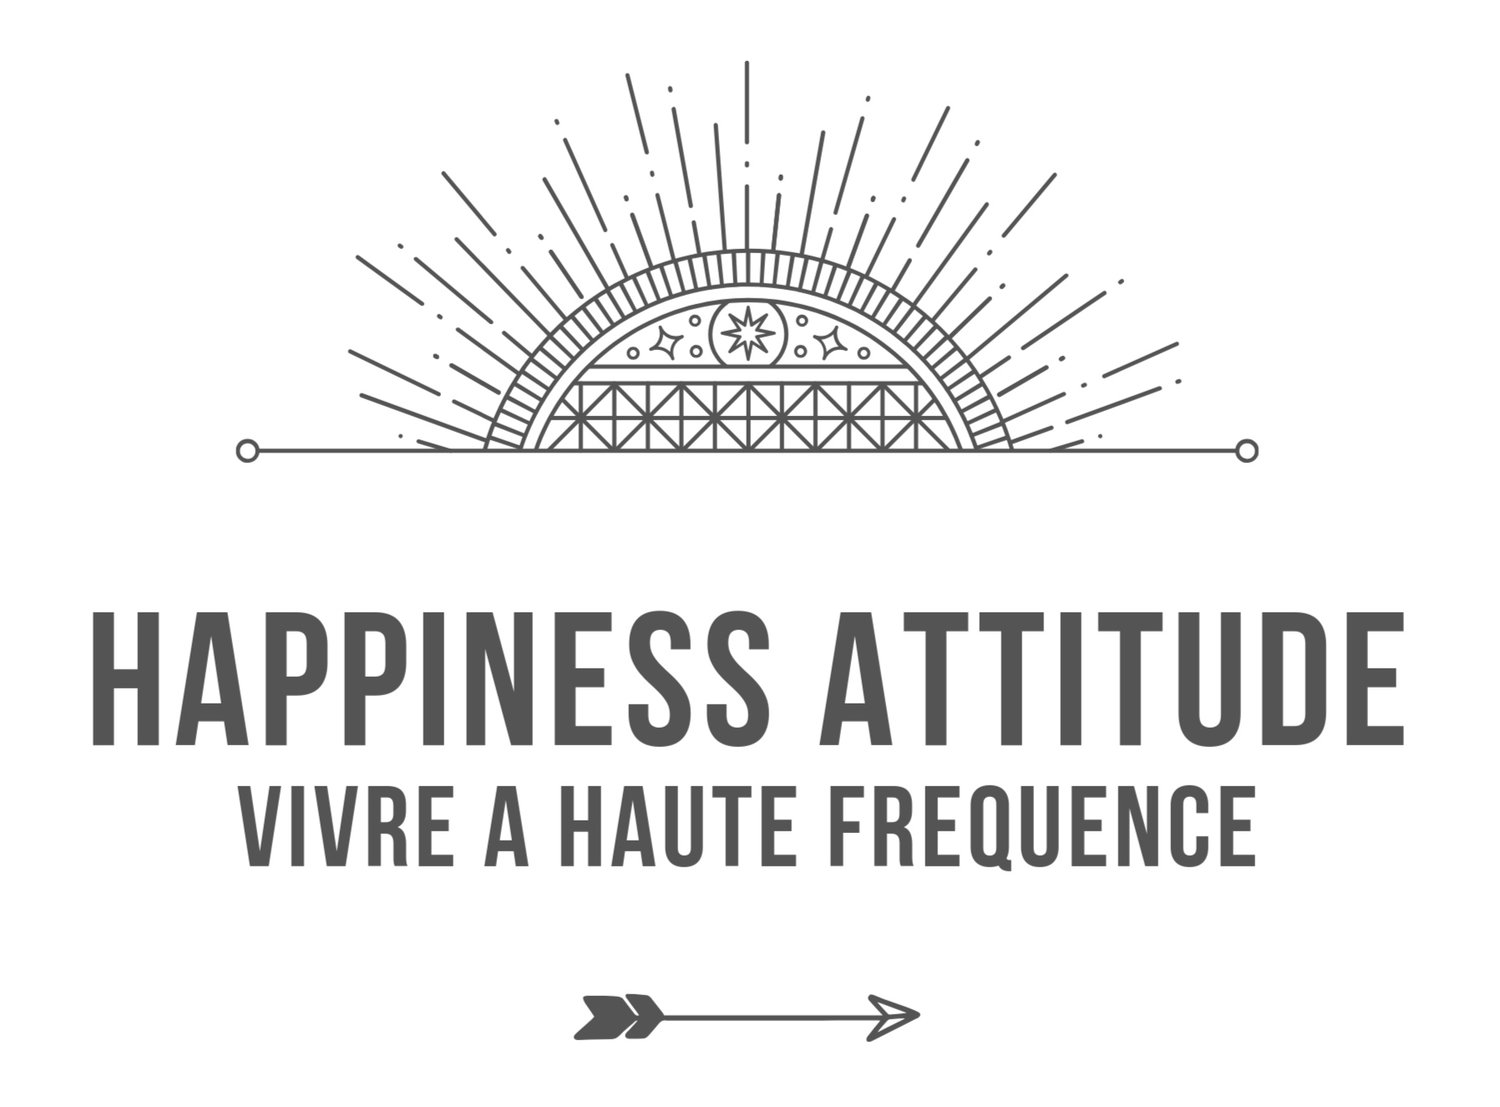 HappinessAttitude.com